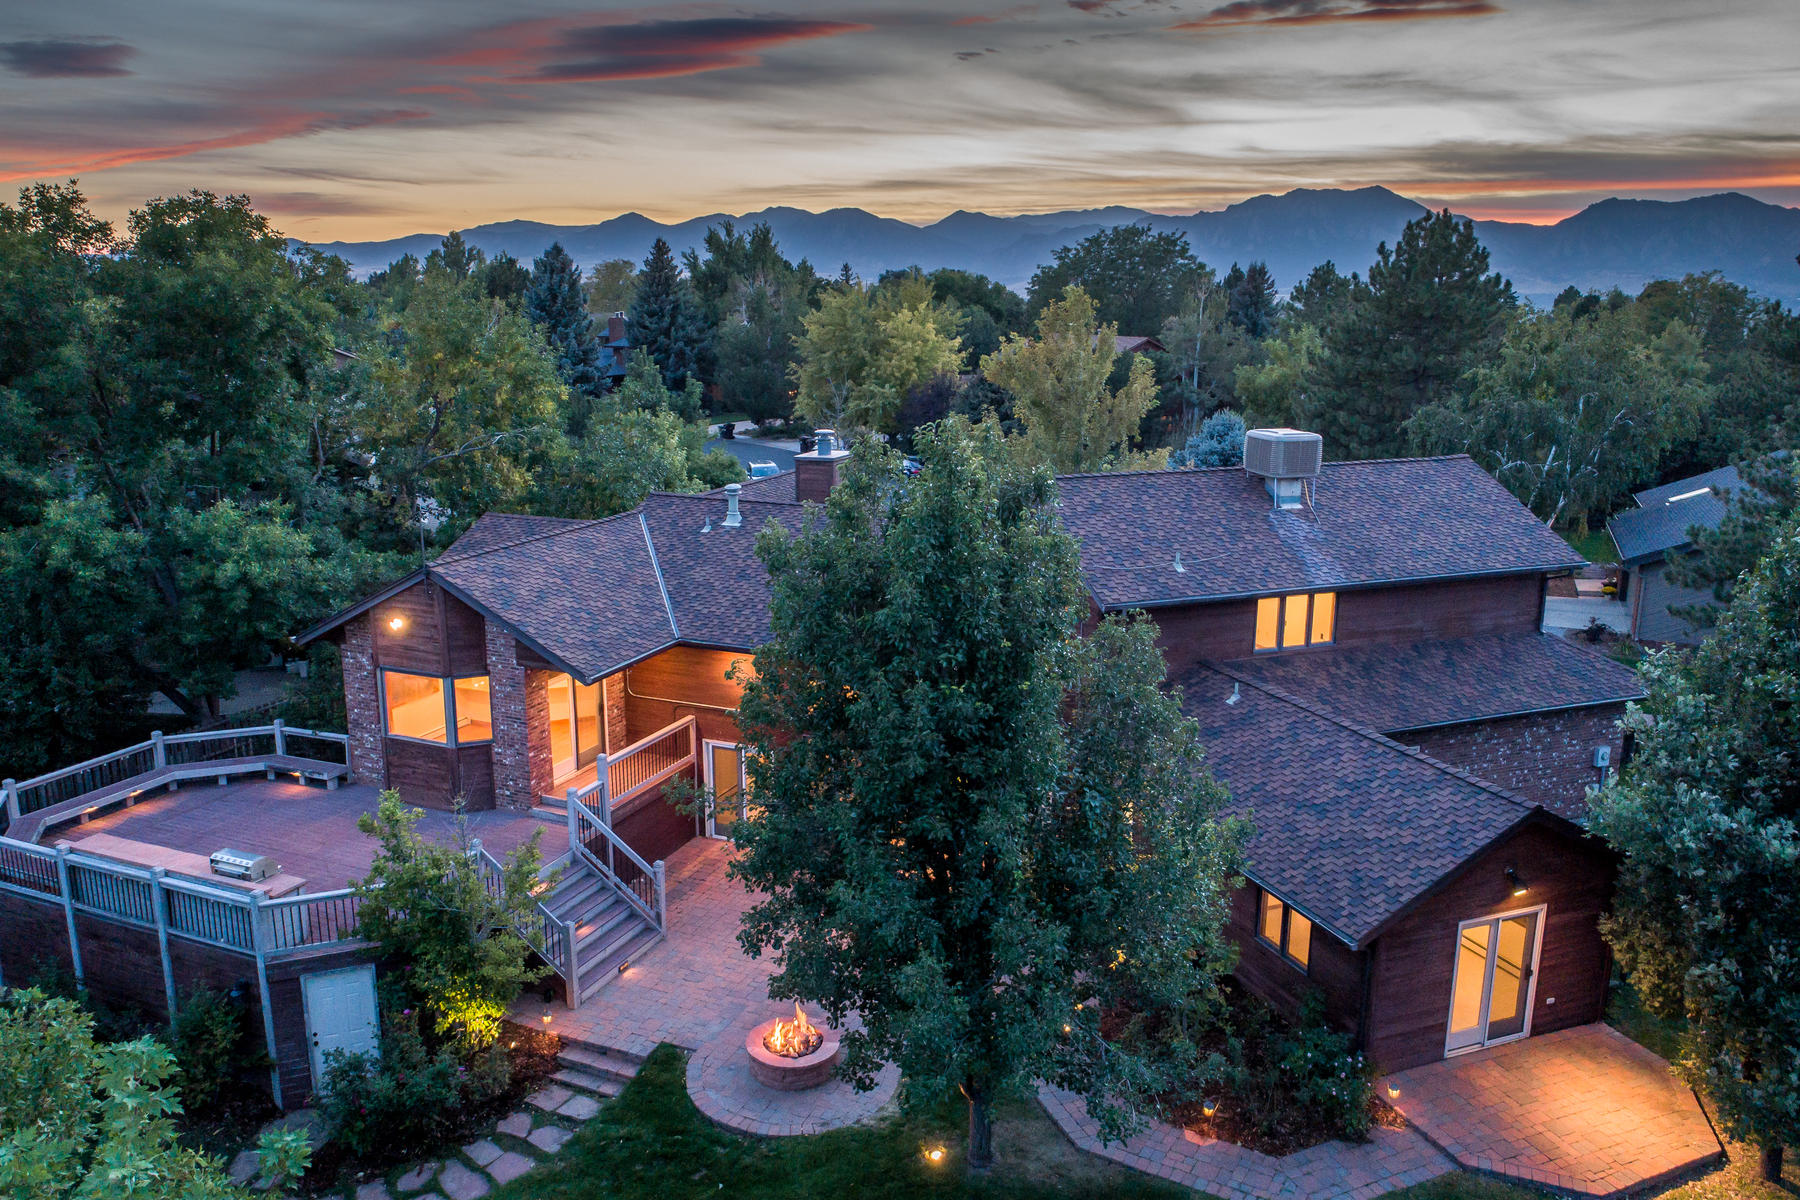 Property for Active at A Breath Of Fresh Air 1876 W Choke Cherry Dr. Louisville, Colorado 80027 United States